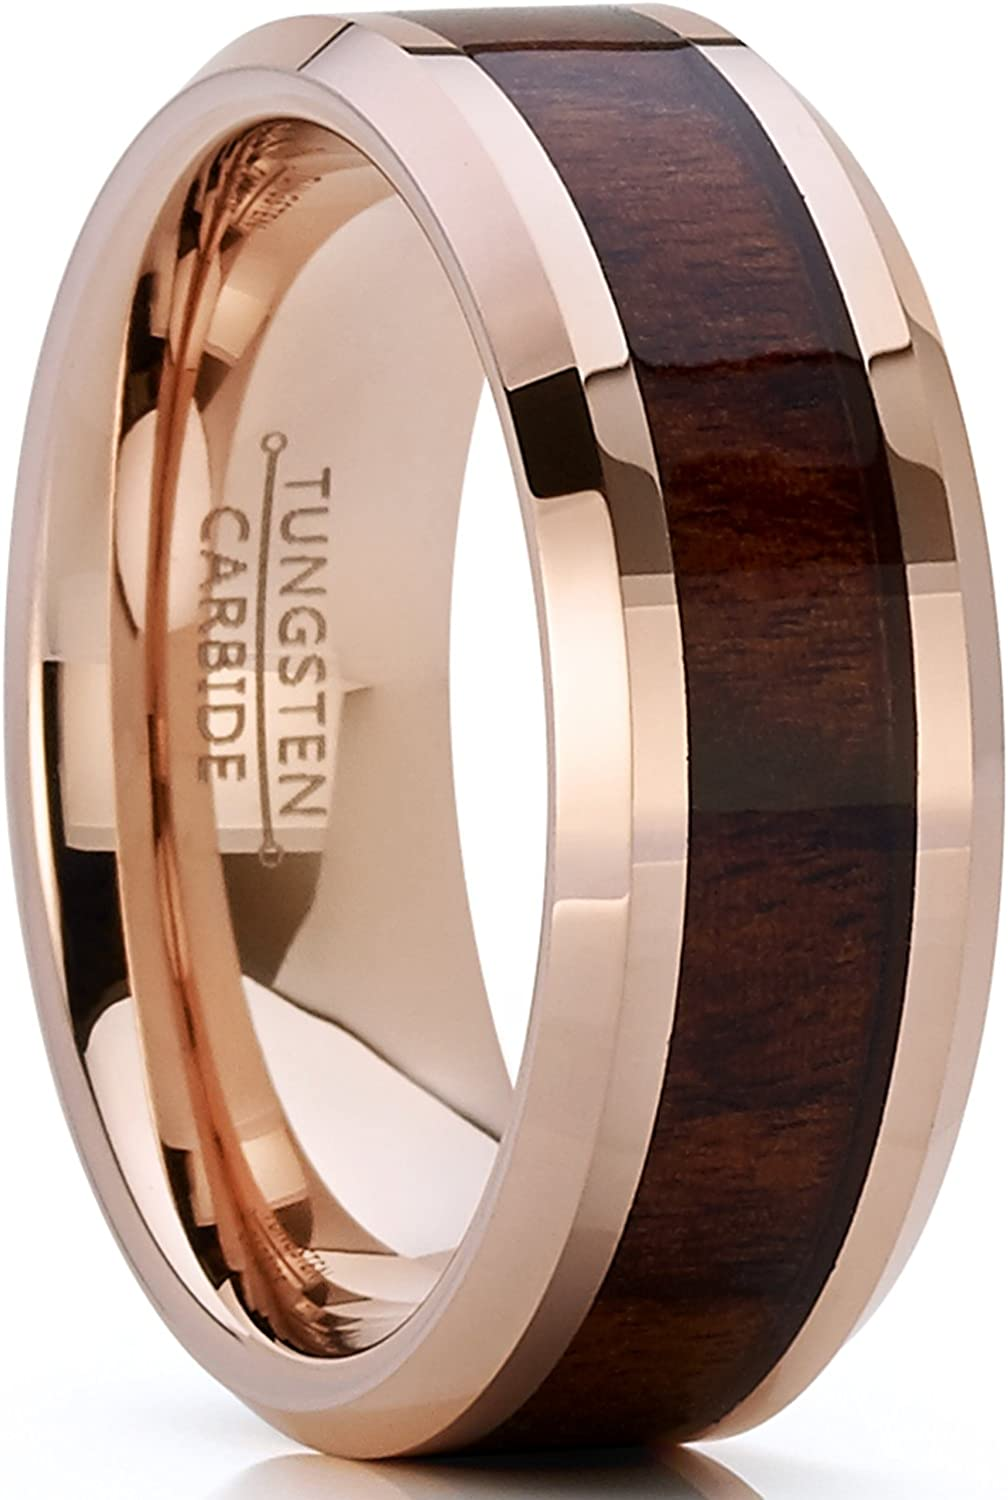 Bonndorf Men's Women's Rose Tone Tungsten Carbide Wedding Band Engagement Ring, Real Wood Inlay, Comfort Fit 8mm